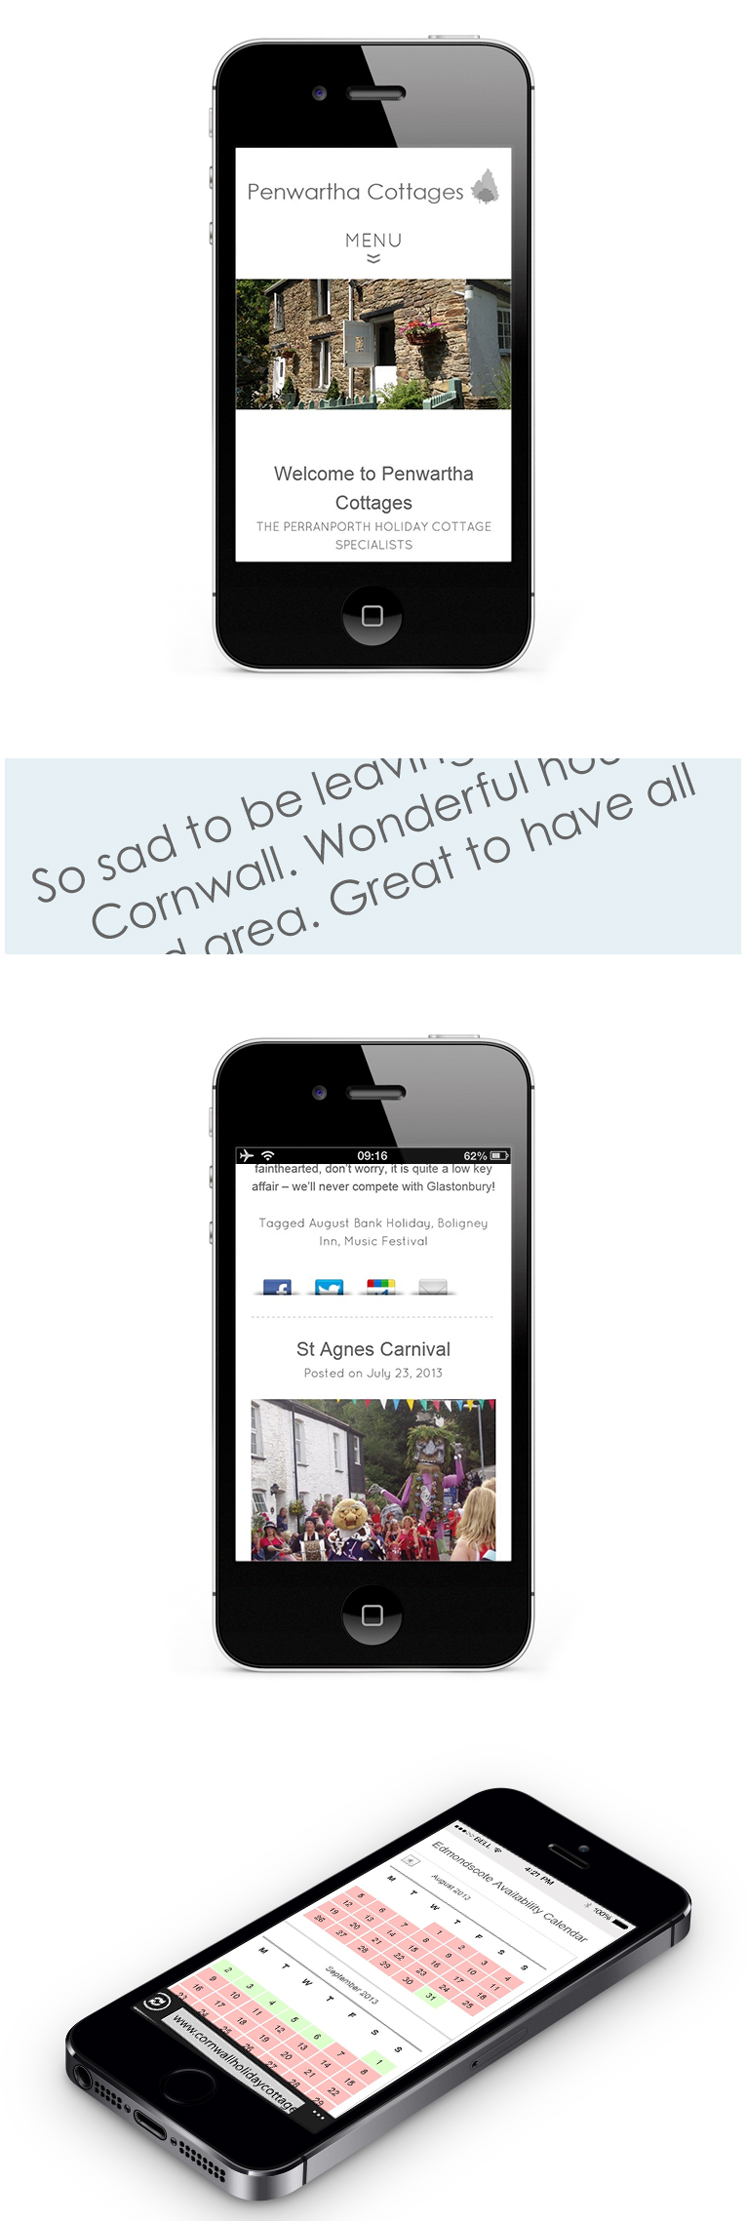 Mobile responsive website design for Penwartha Cottages